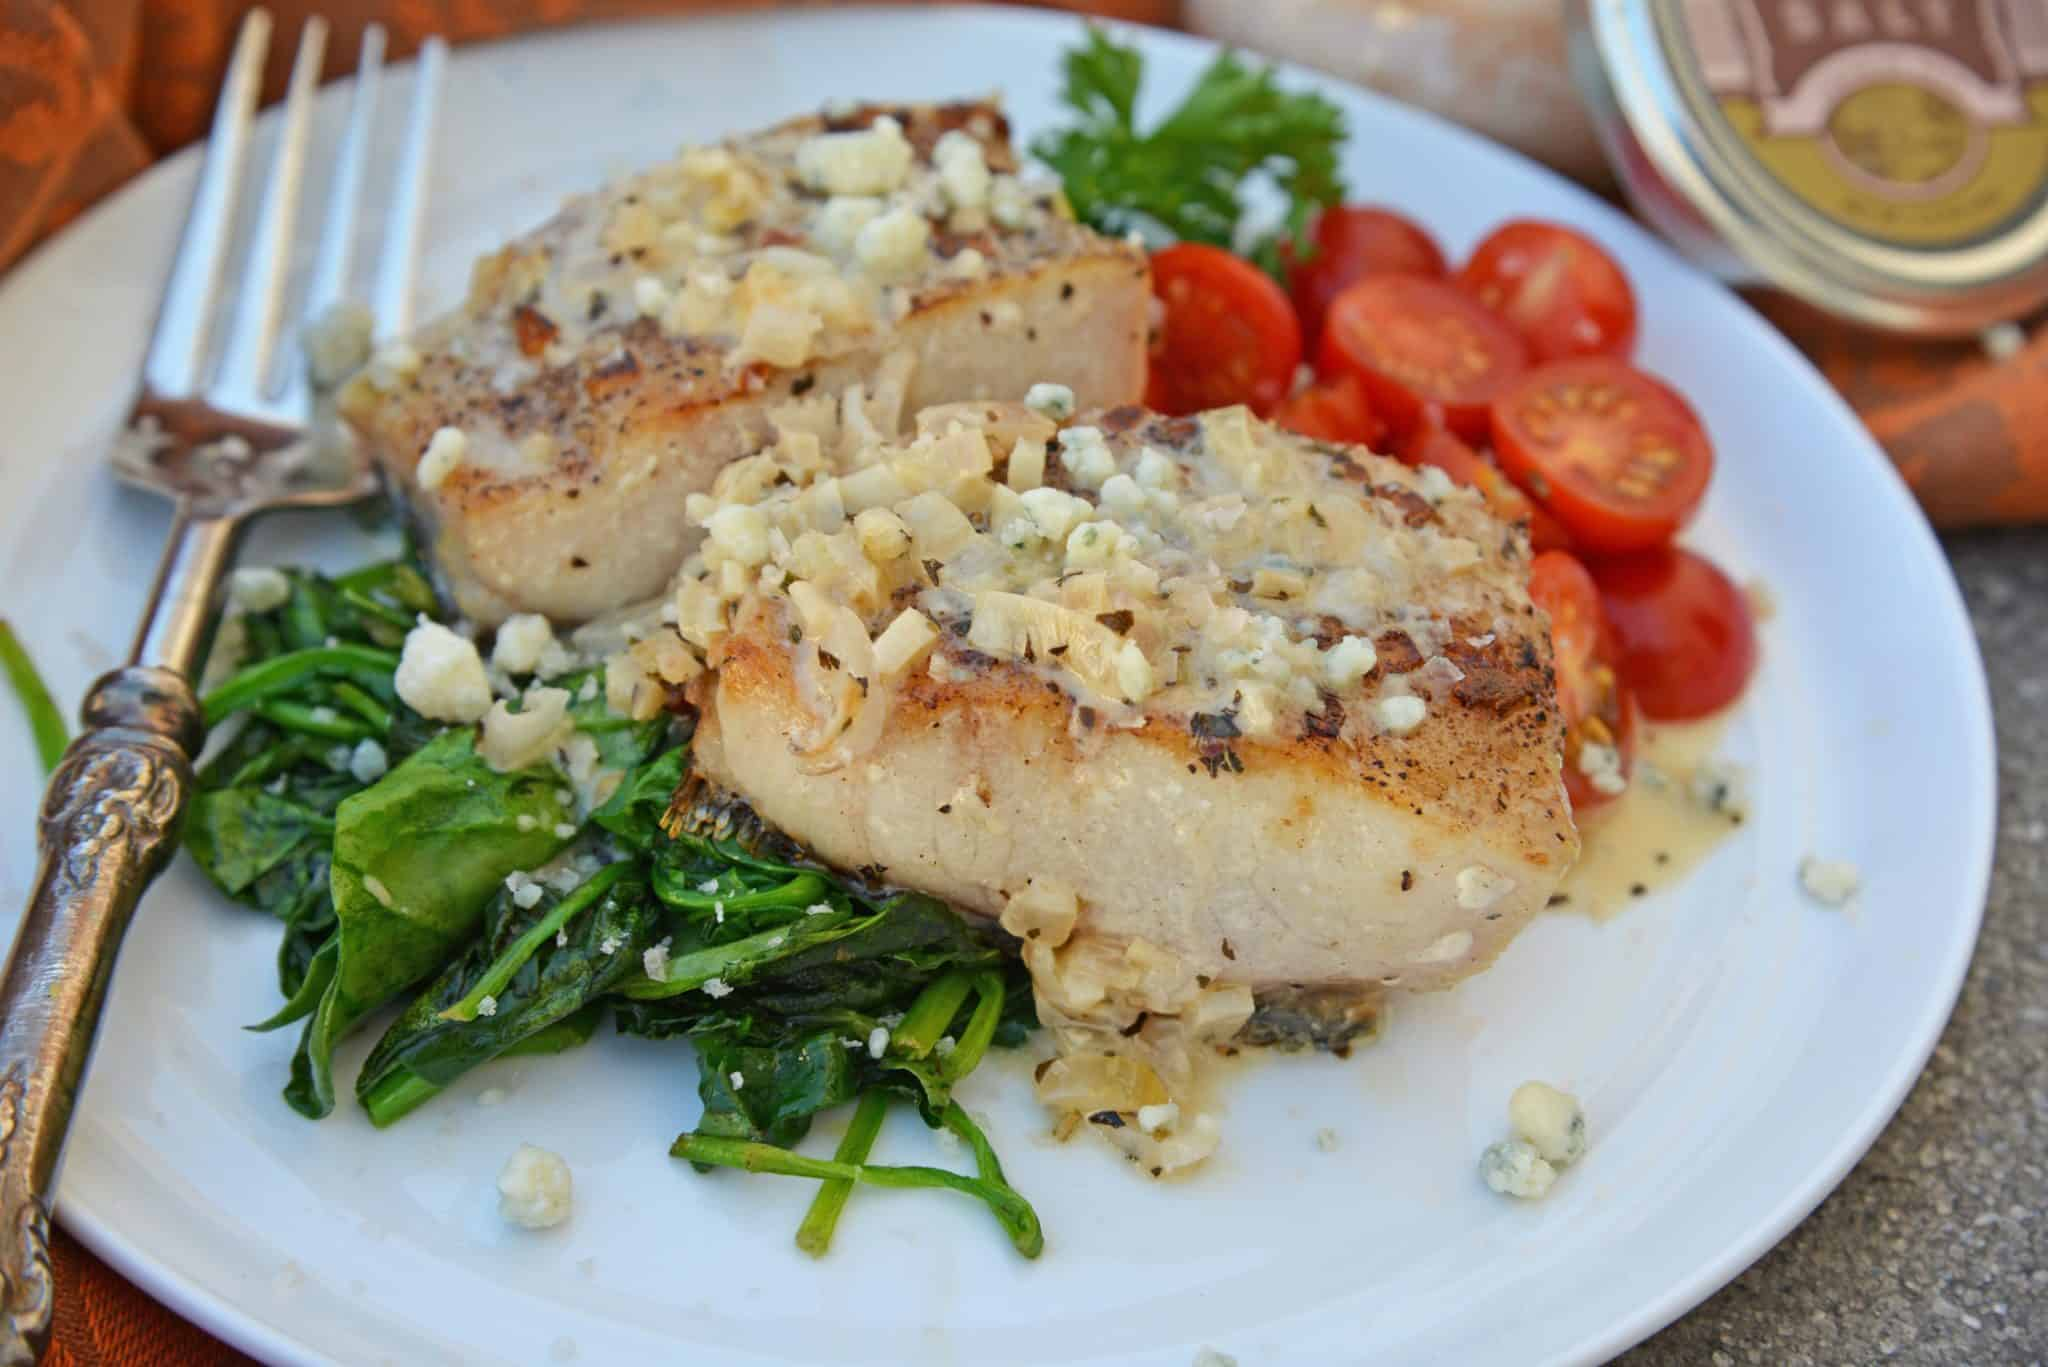 This Garlic Peppercorn Crusted Mahi Mahi recipe is serve with a sherry blue cheese cream sauce give it a restaurant quality flavor. #mahimahirecipes #howtocookmahimahi www.savoryexperiments.com